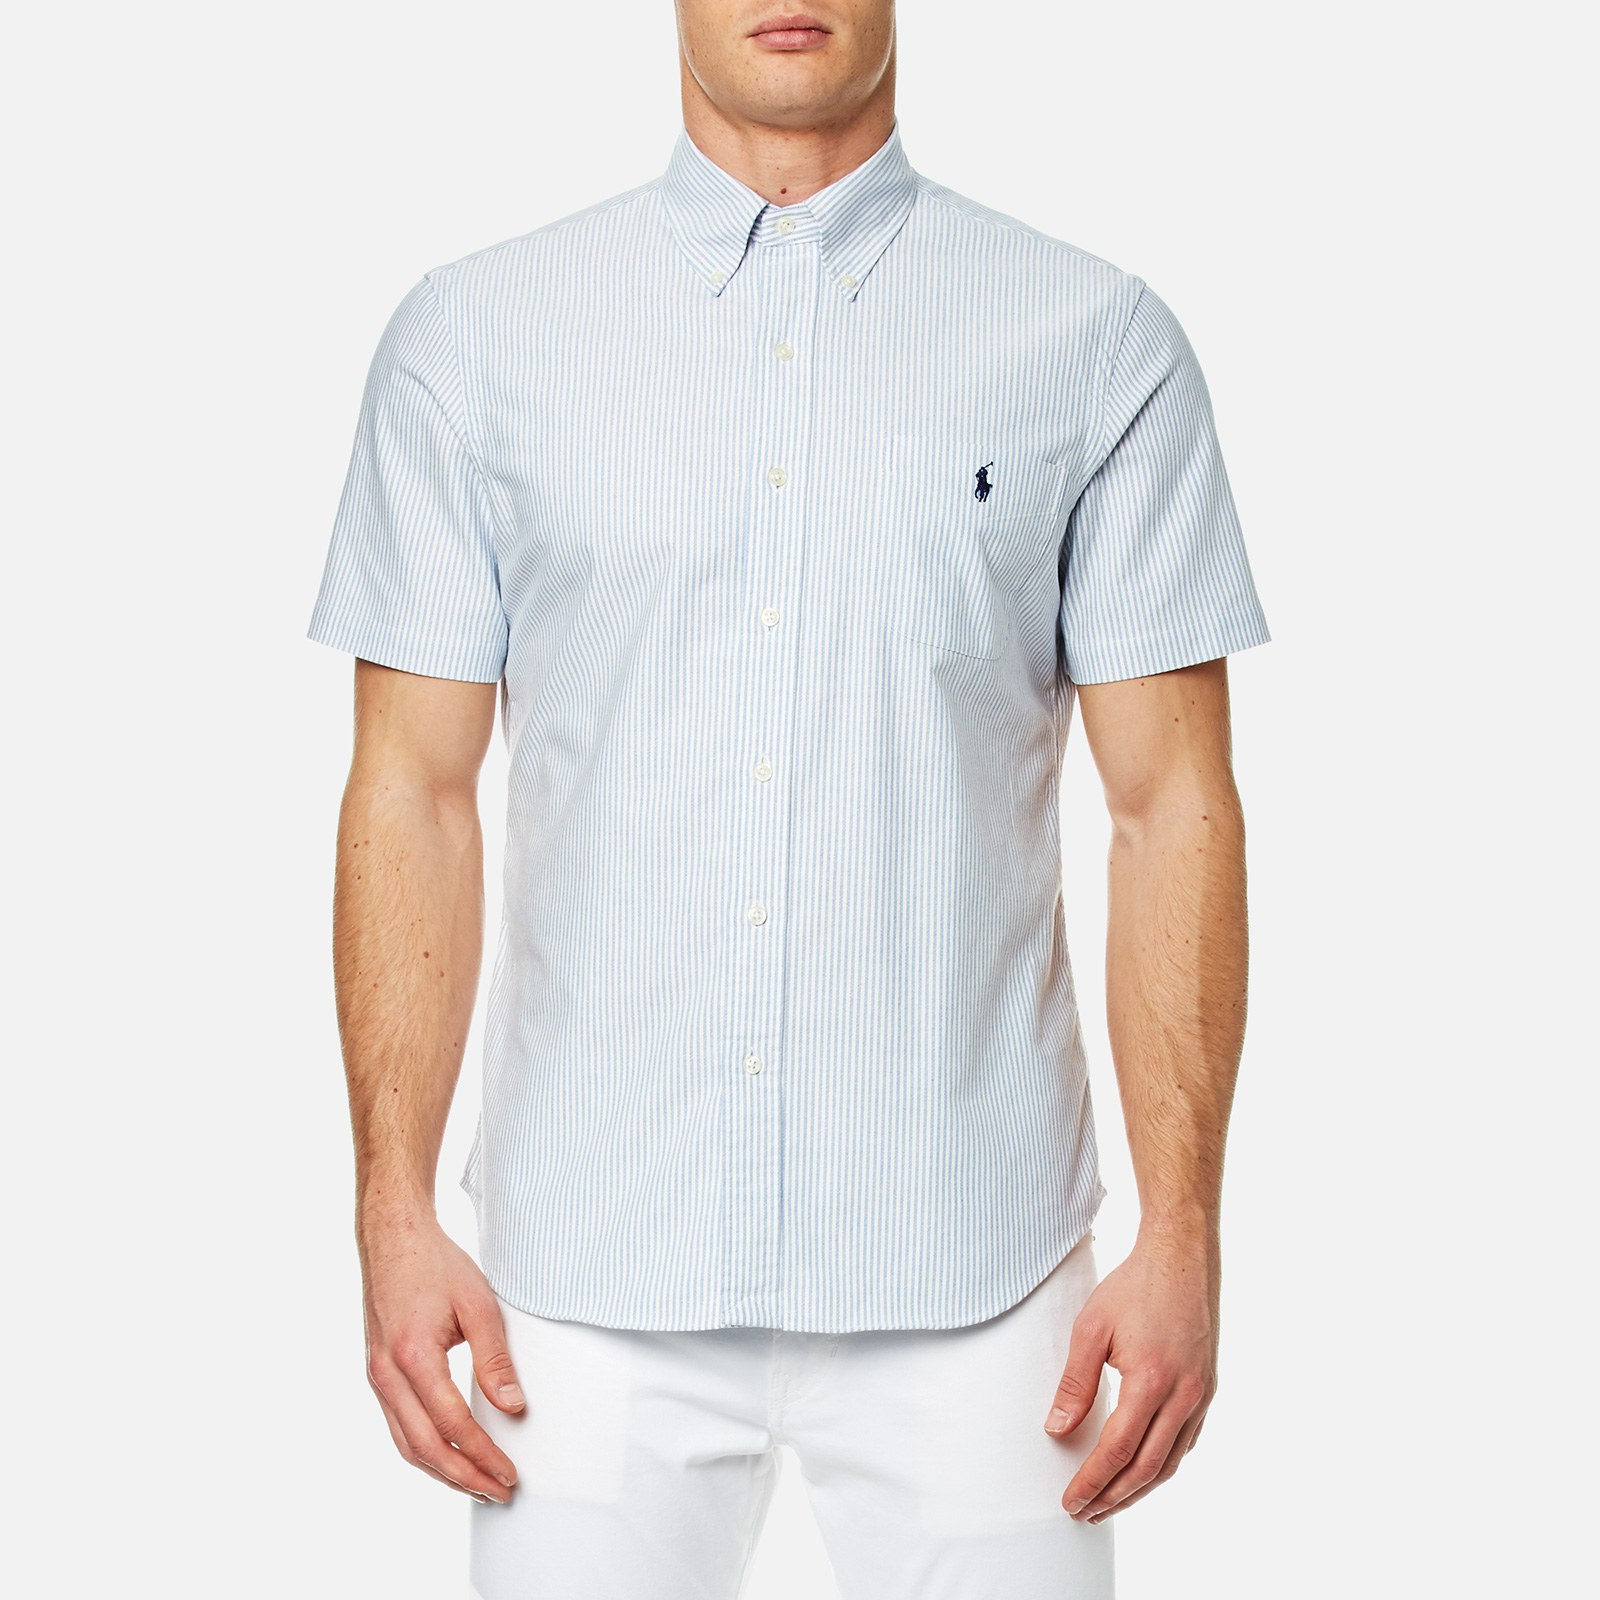 3b53d2945c Polo Ralph Lauren Men's Short Sleeve Button Down Shirt - Blue/White - Free  UK Delivery over £50